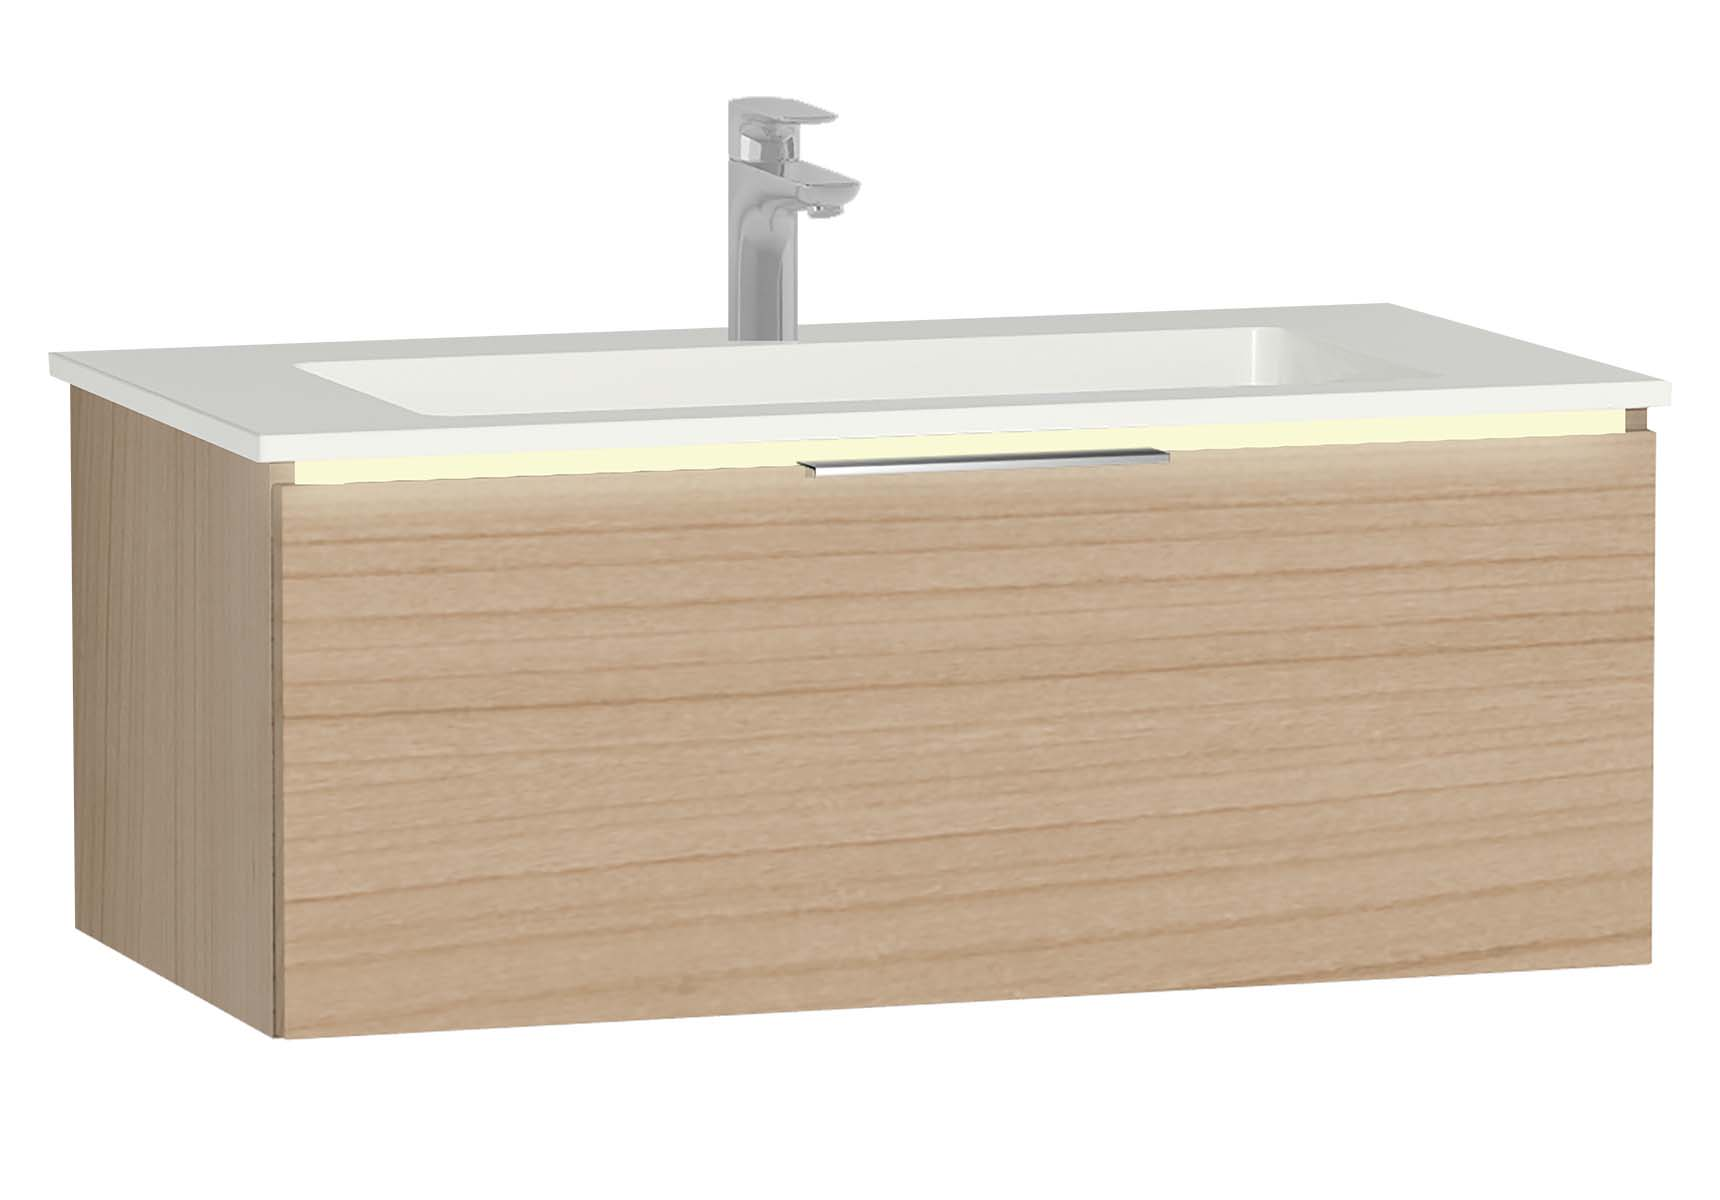 Central Washbasin Unit with 1 drawer, 90 cm, Golden Cherry, Infinit Washbasin, Led